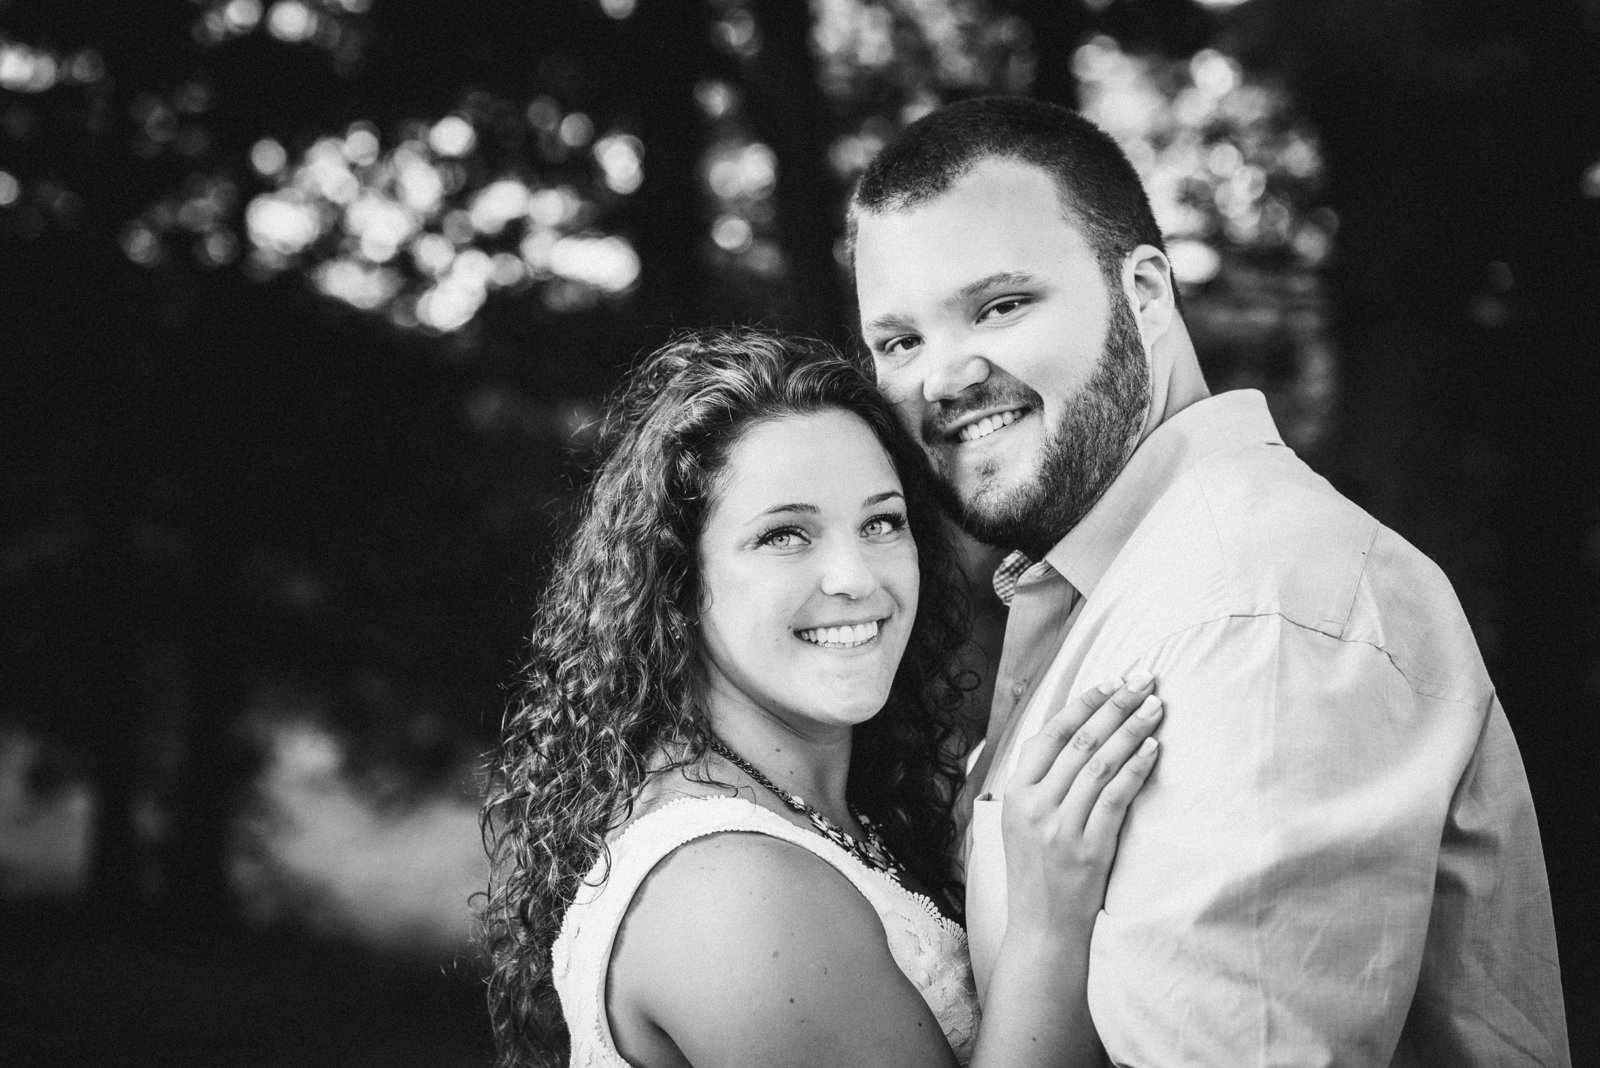 NJ_Rustic_Engagement_Photography147